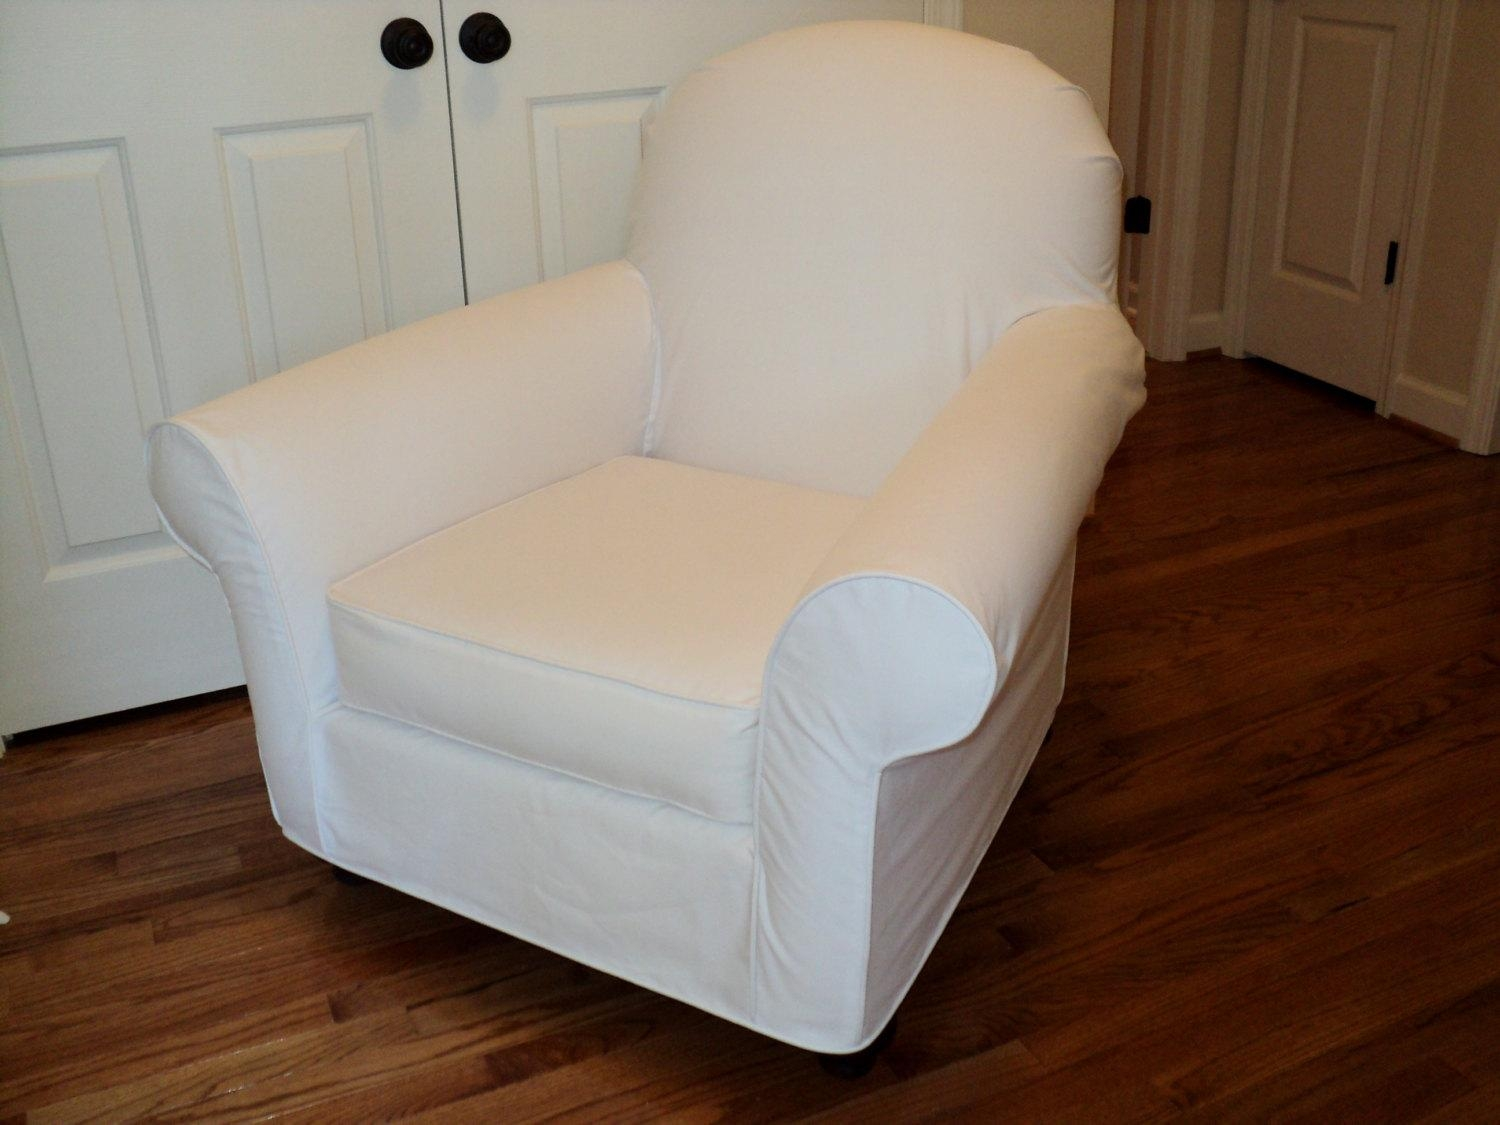 Custom Slipcover For Your Pb Dream Rocker With Wooden Pertaining To Pottery Barn Chair Slipcovers (Image 2 of 20)